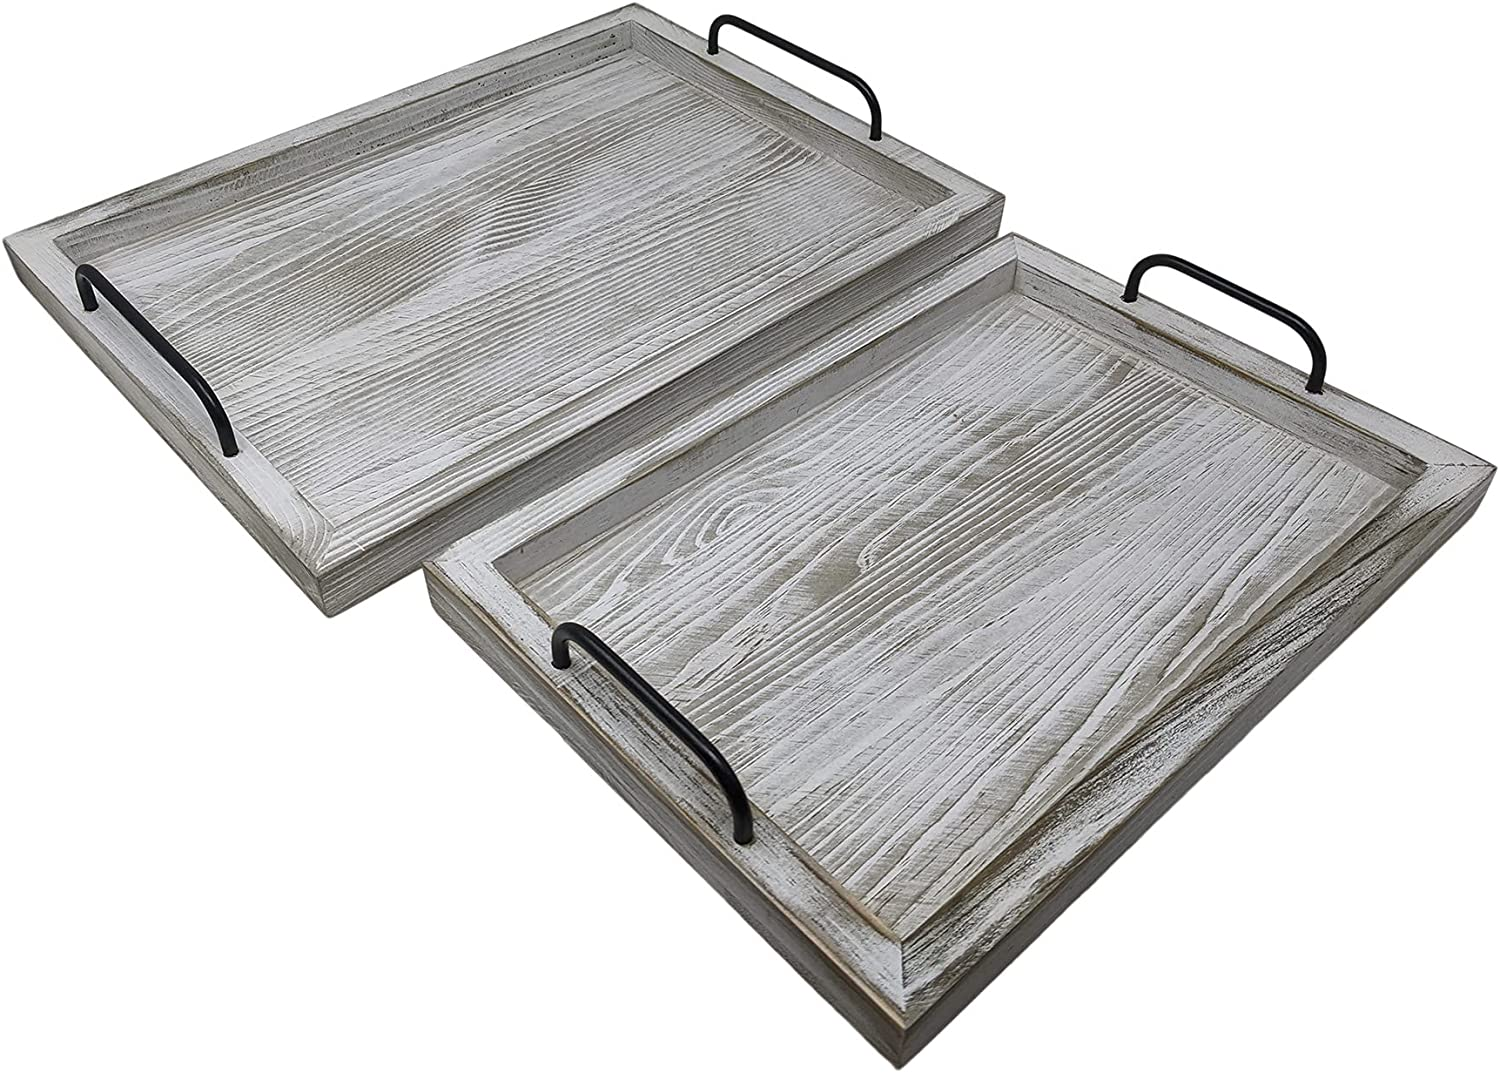 Gianna's Home Rustic Farmhouse Set of 2 Food Serving Trays with Metal Handles (Rustic White)